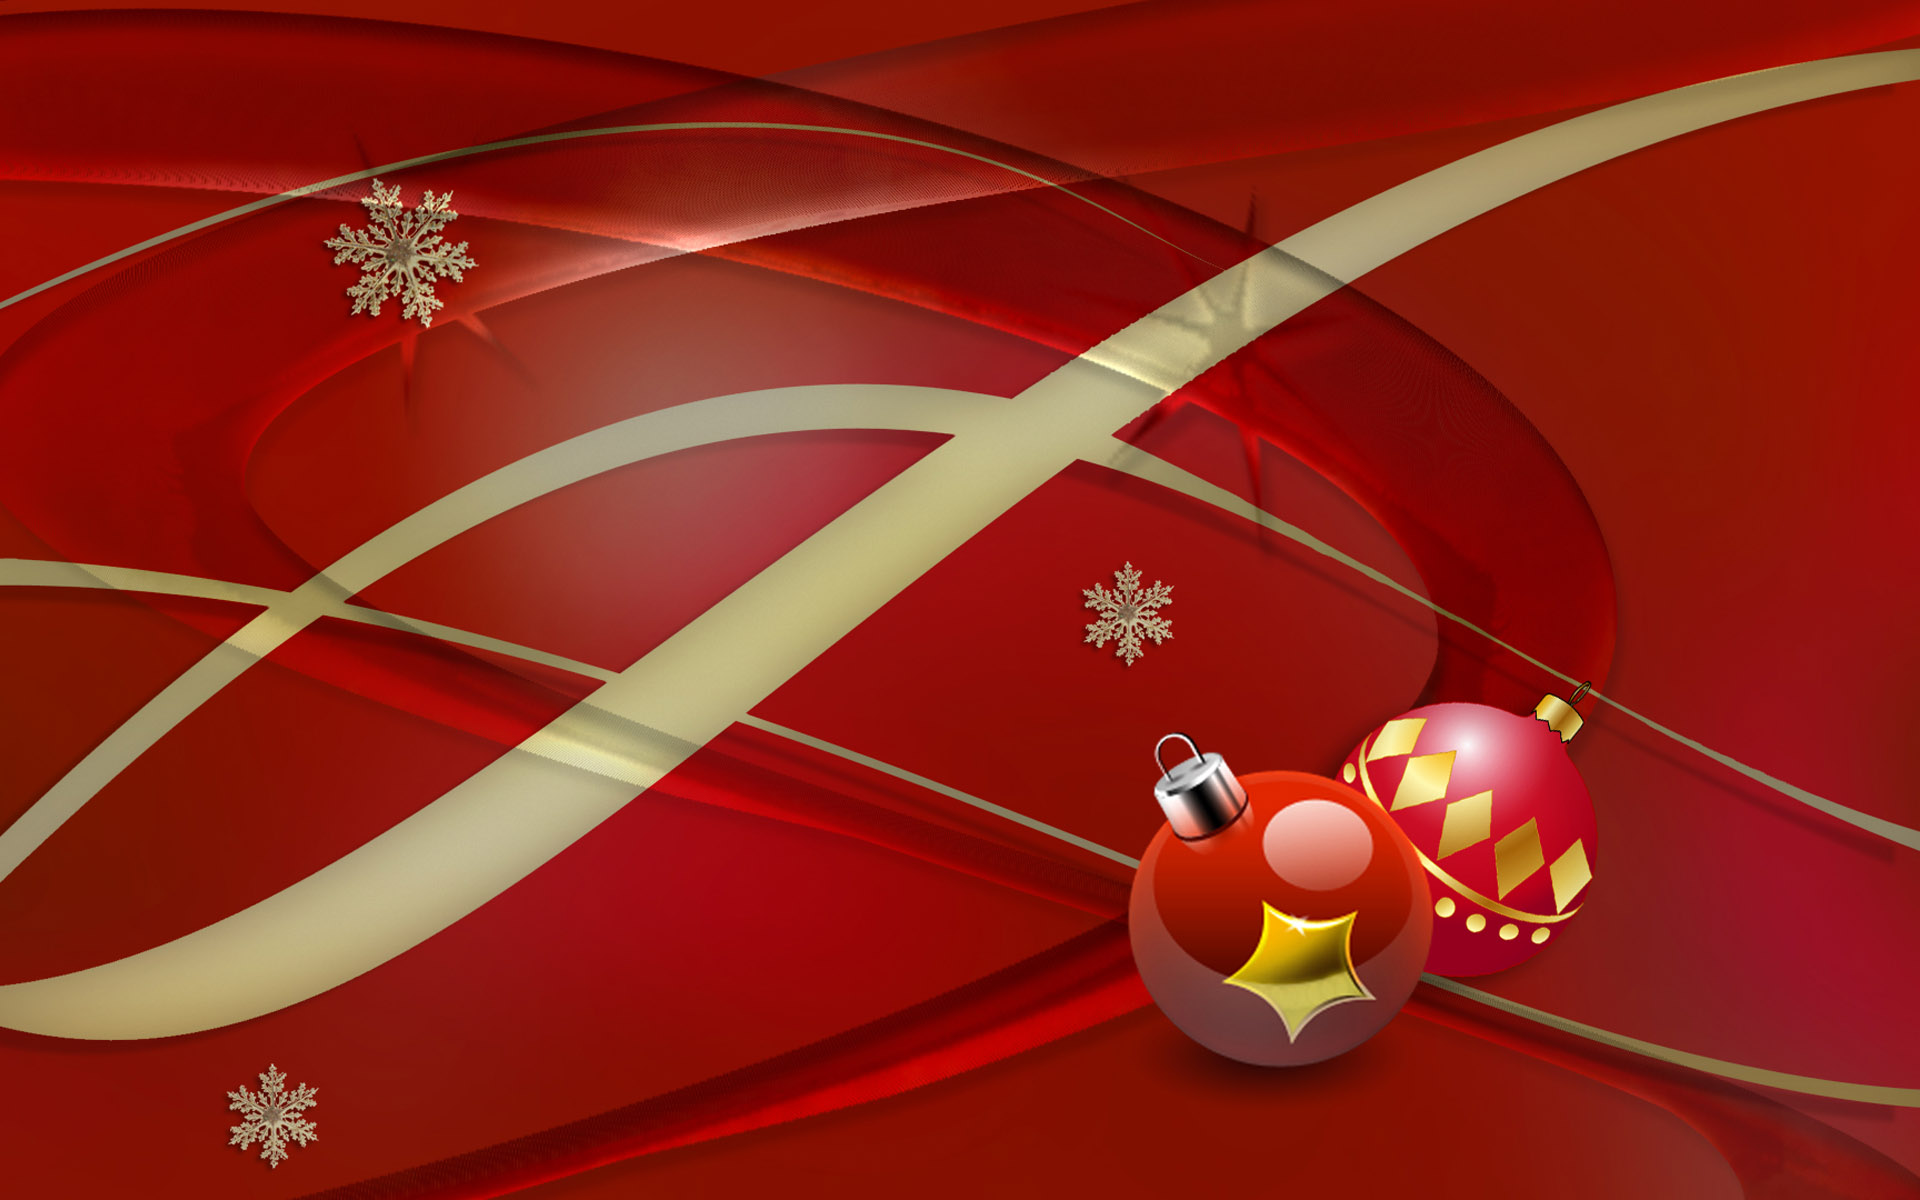 Christmas wallpaper high definition 26856